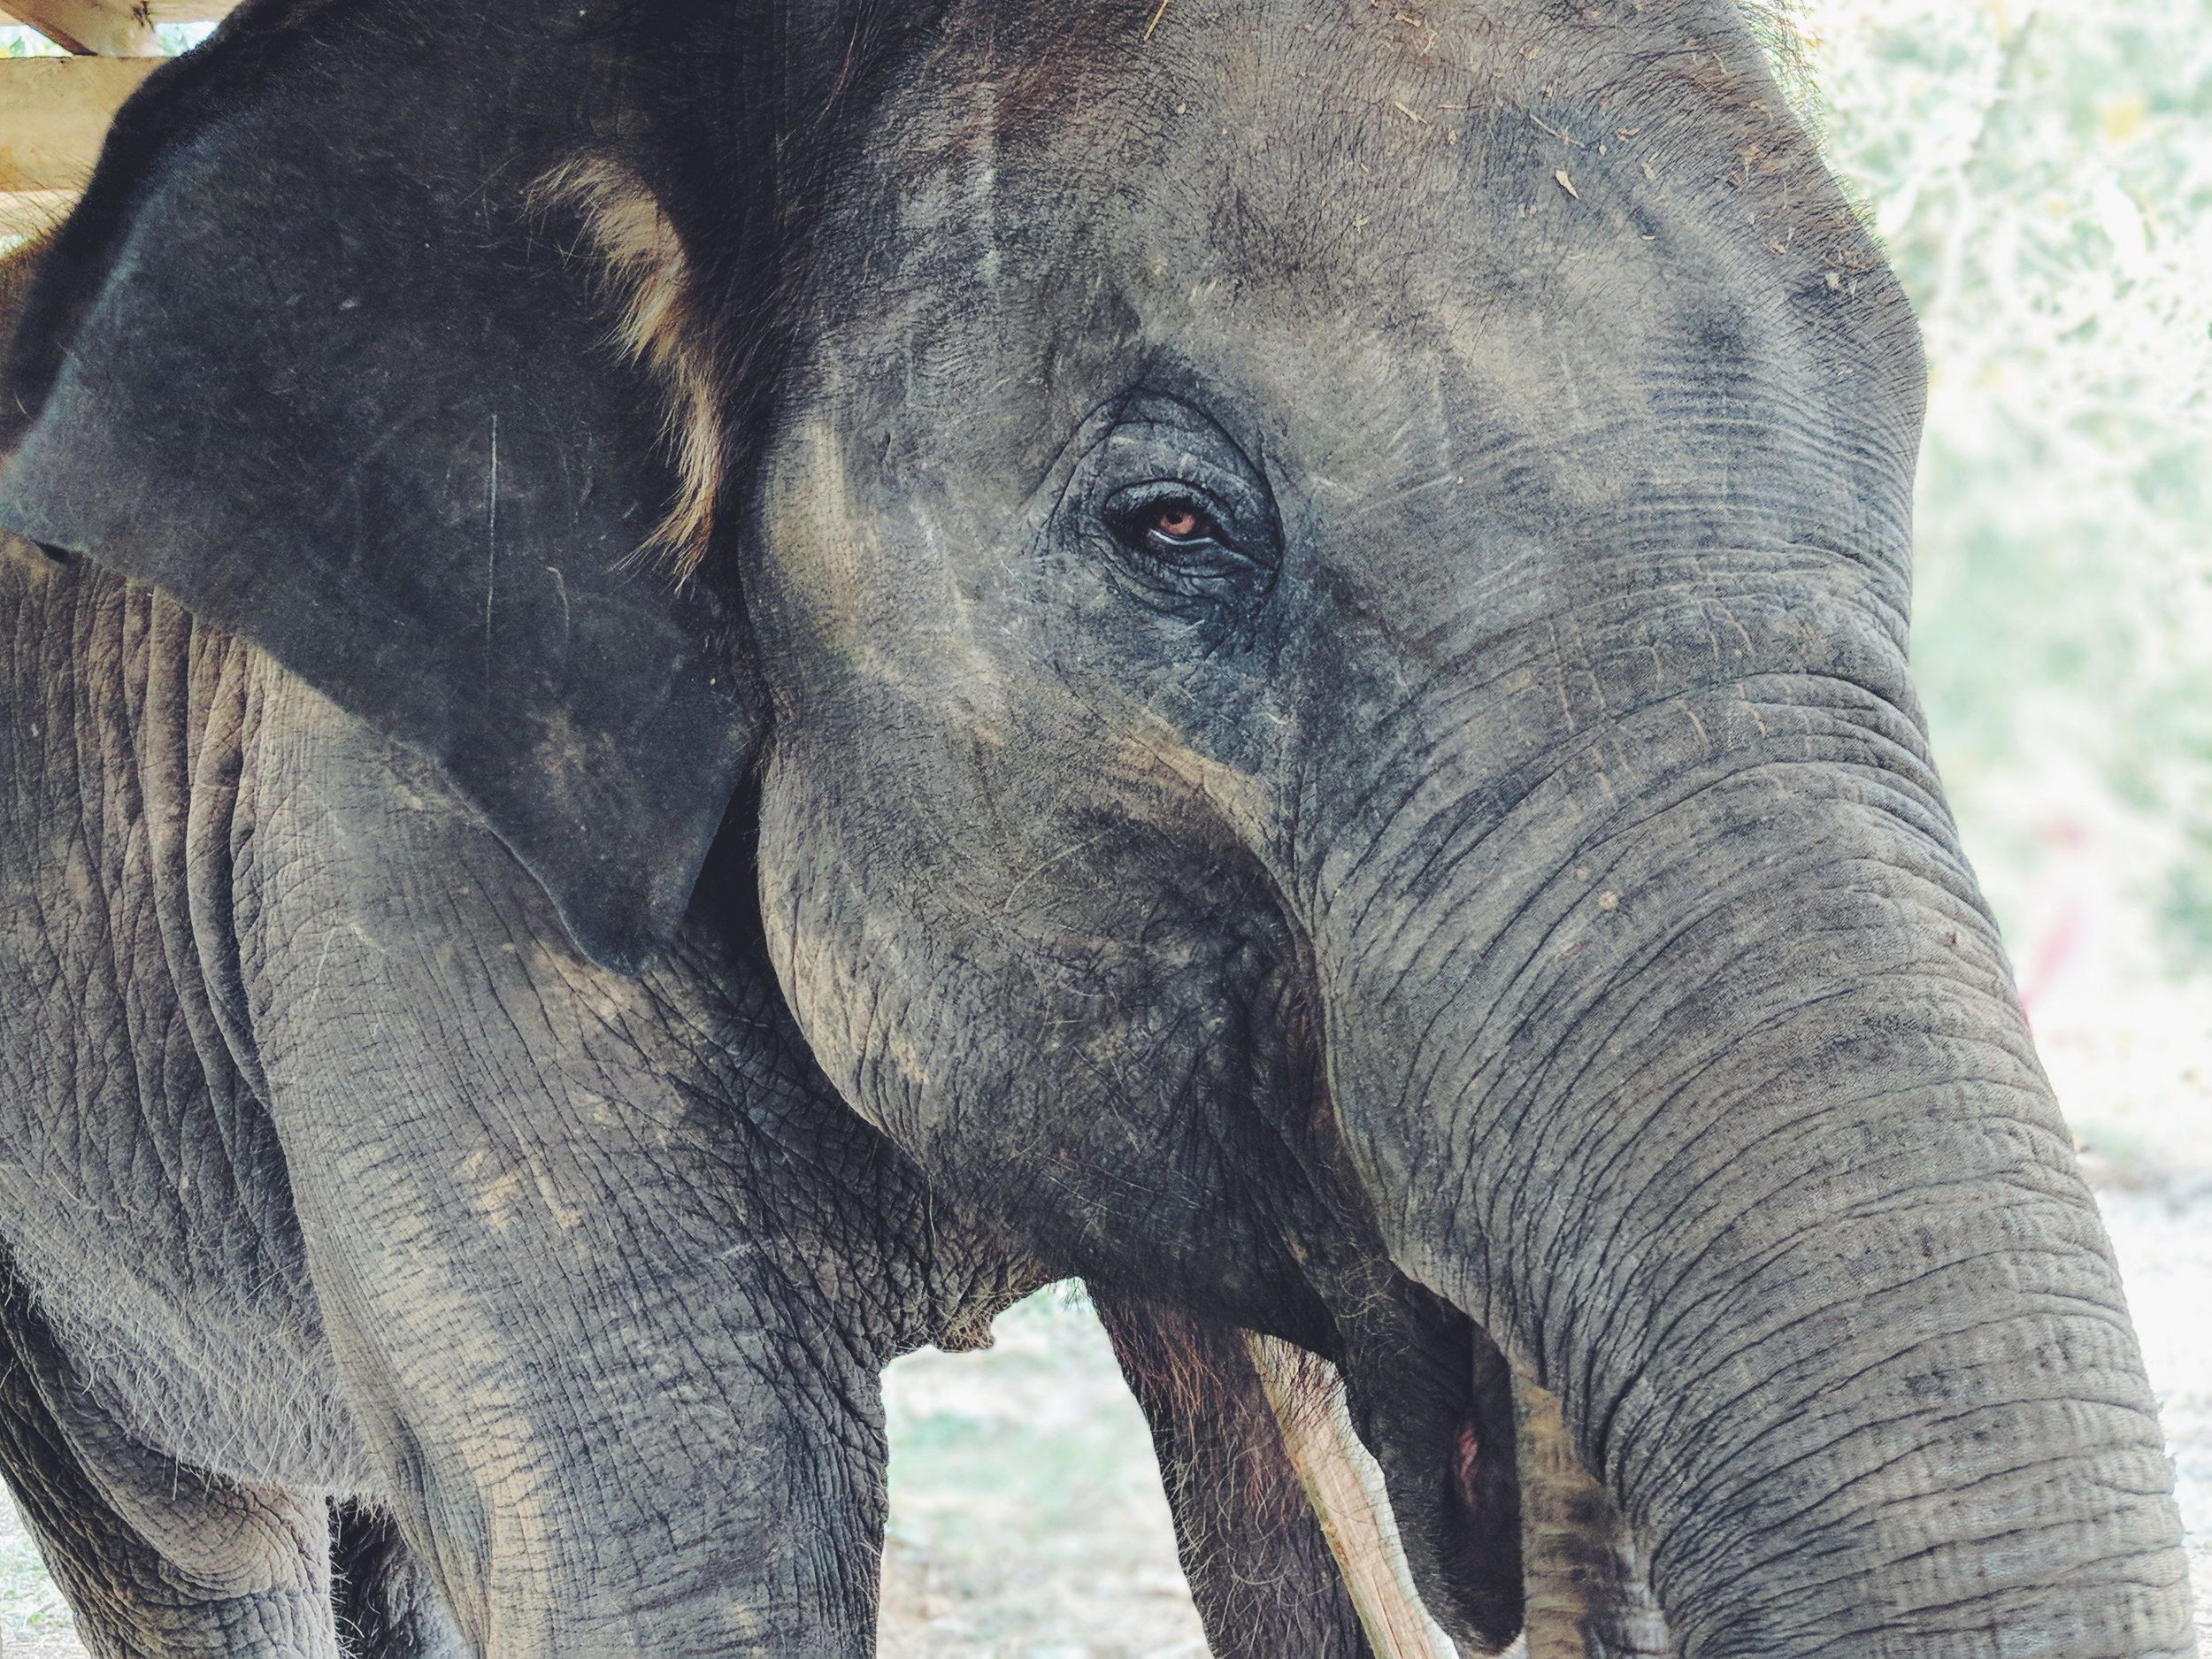 35 Year Old Female Elephant at Elephant Rescue Park in Chiang Mai, Thailand